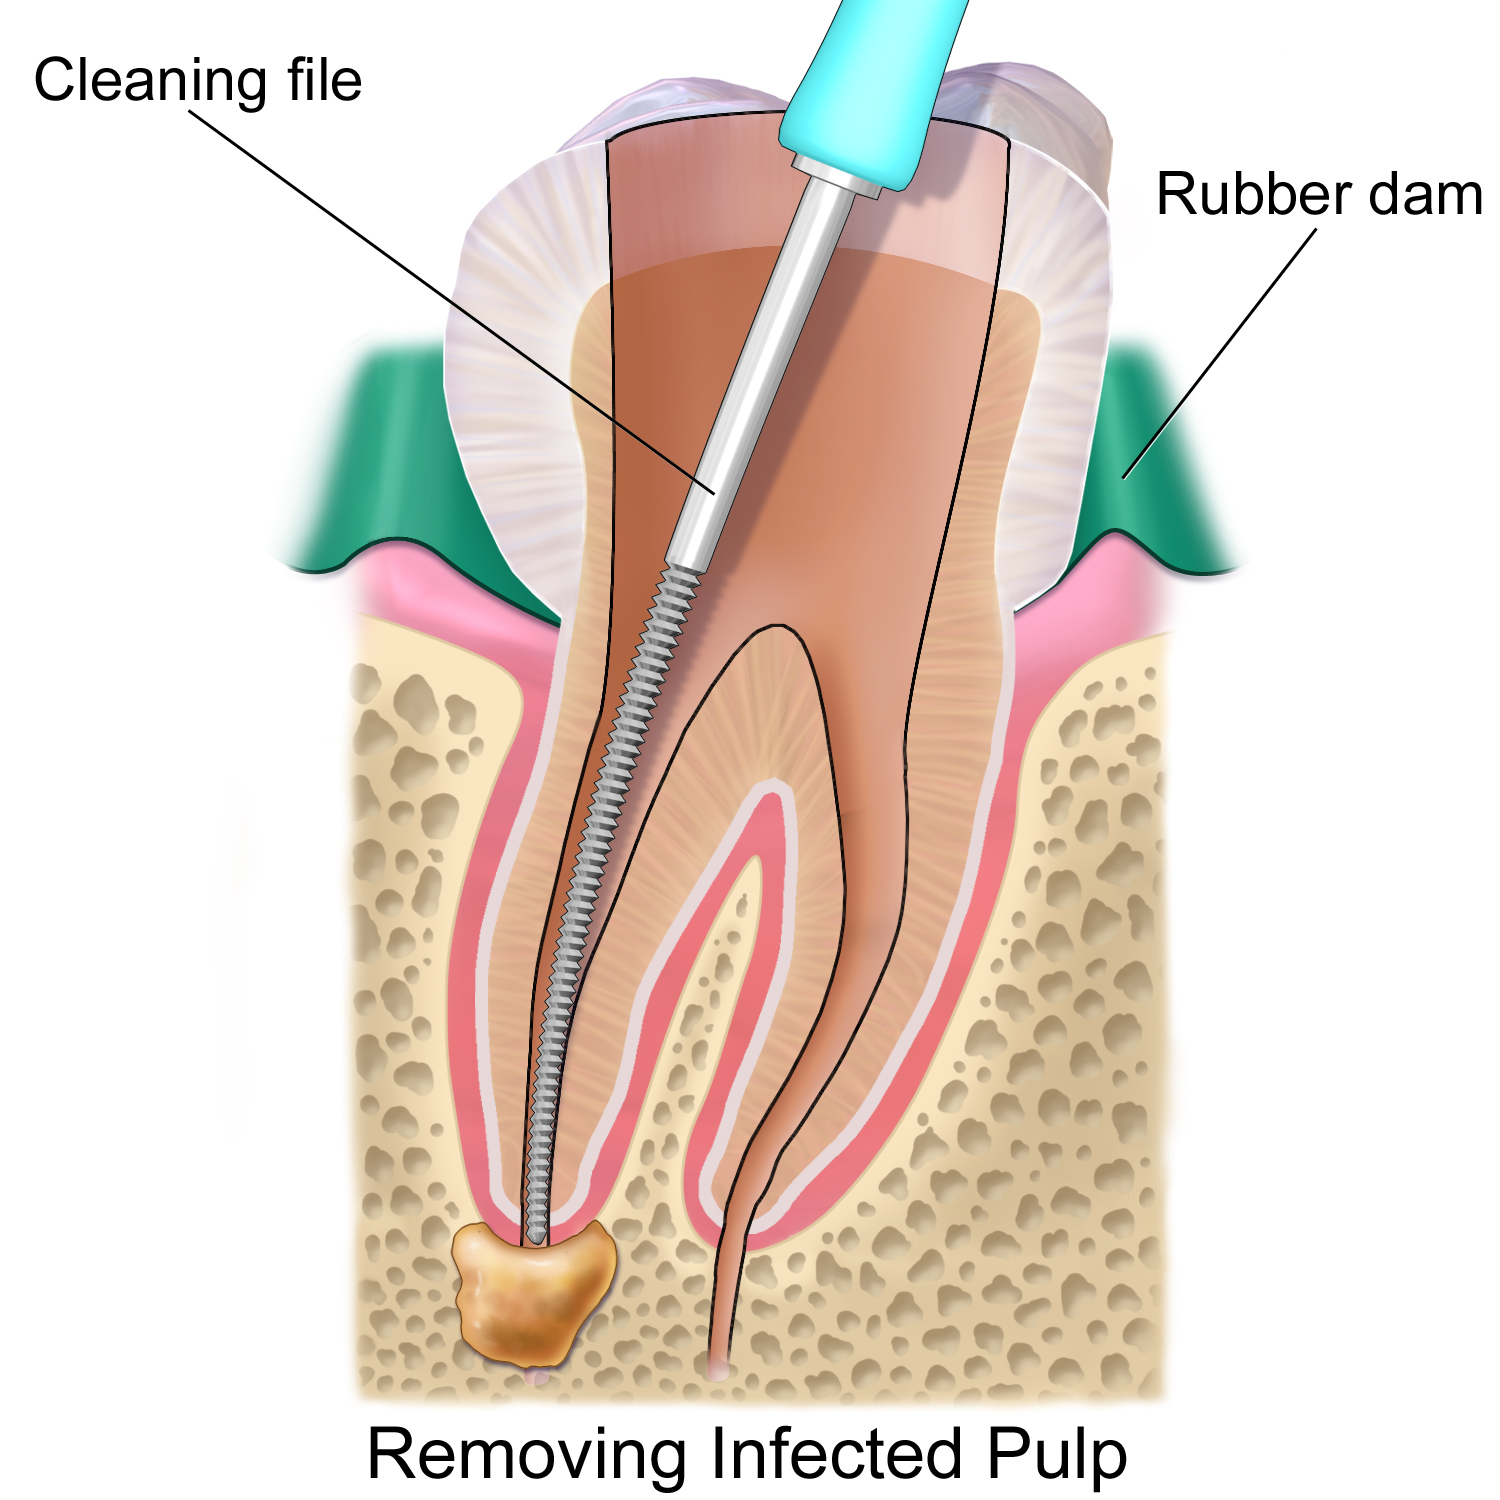 Dental Implants Clinic In Delhi India: Preventing Infectious ...